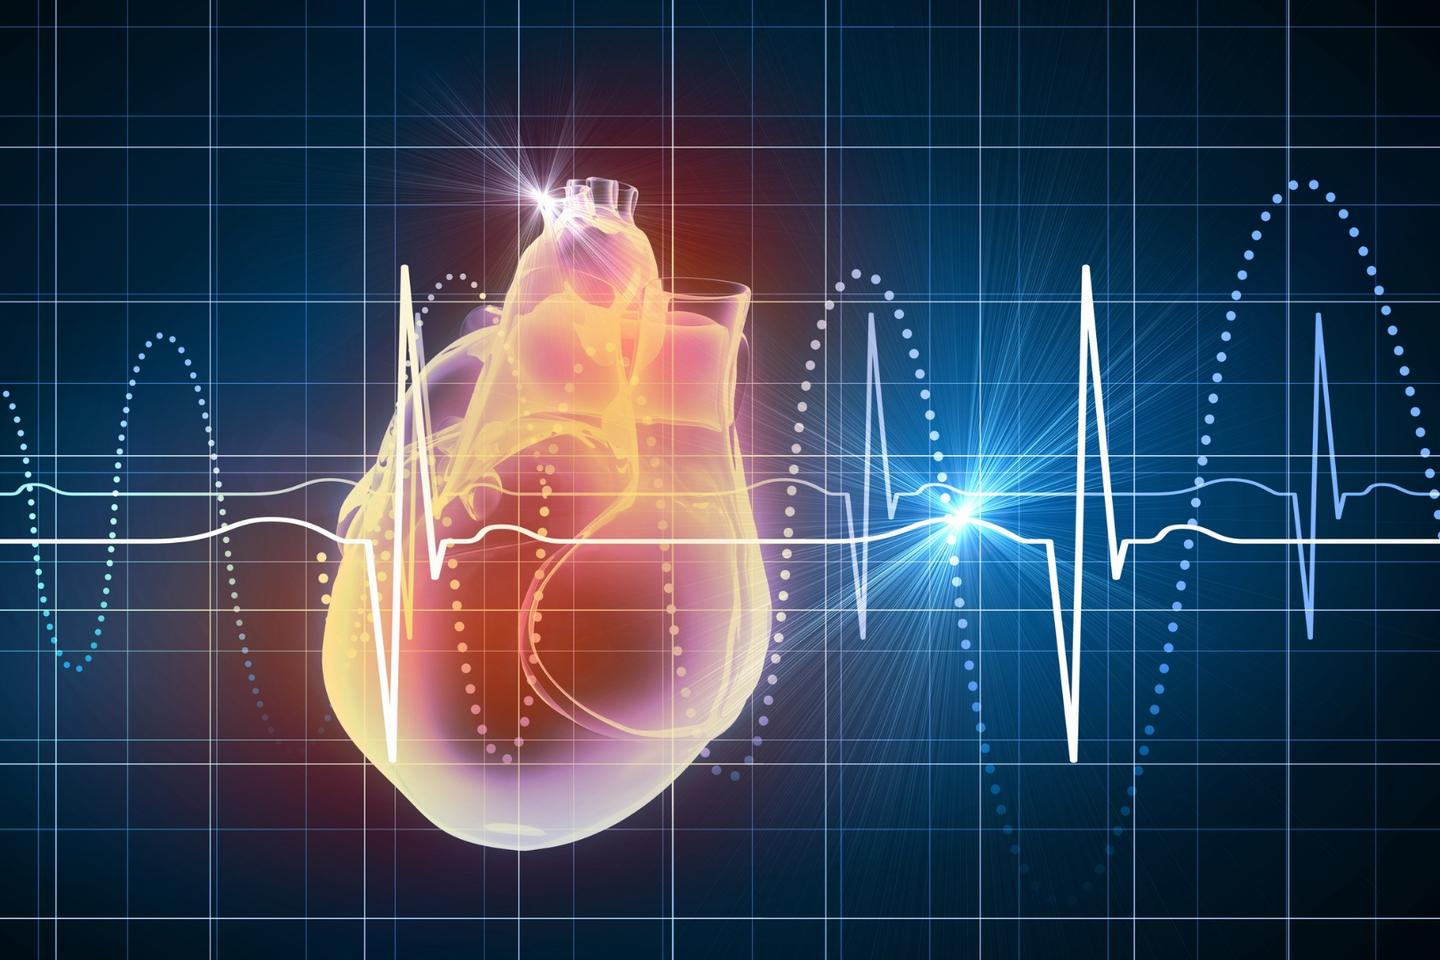 Heart muscle cells and supportive cells have been used together to help patch up broken hearts